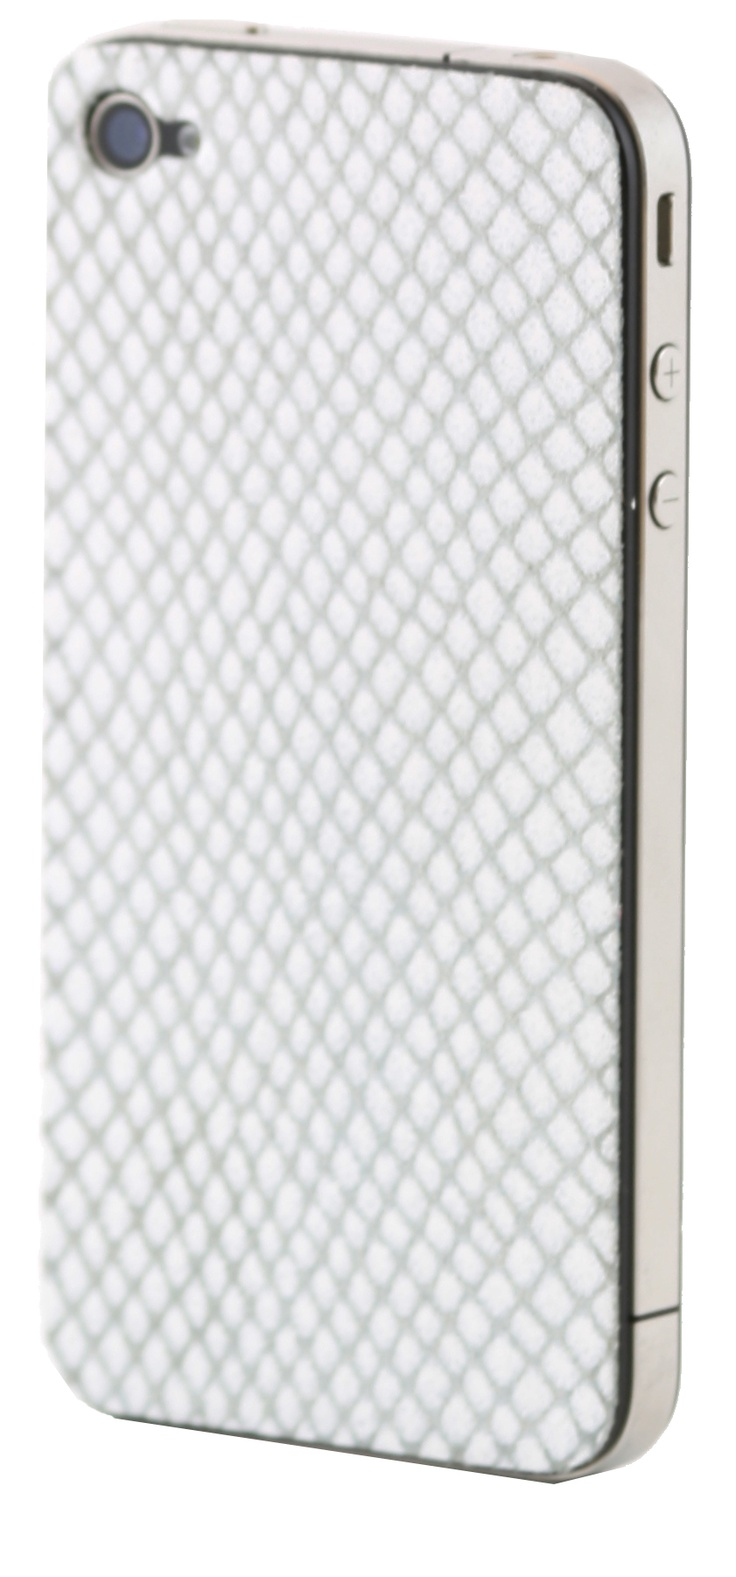 White Lizard iPhone skin by dbramante 1928, see more of our product range at http://www.dbramante1928.com